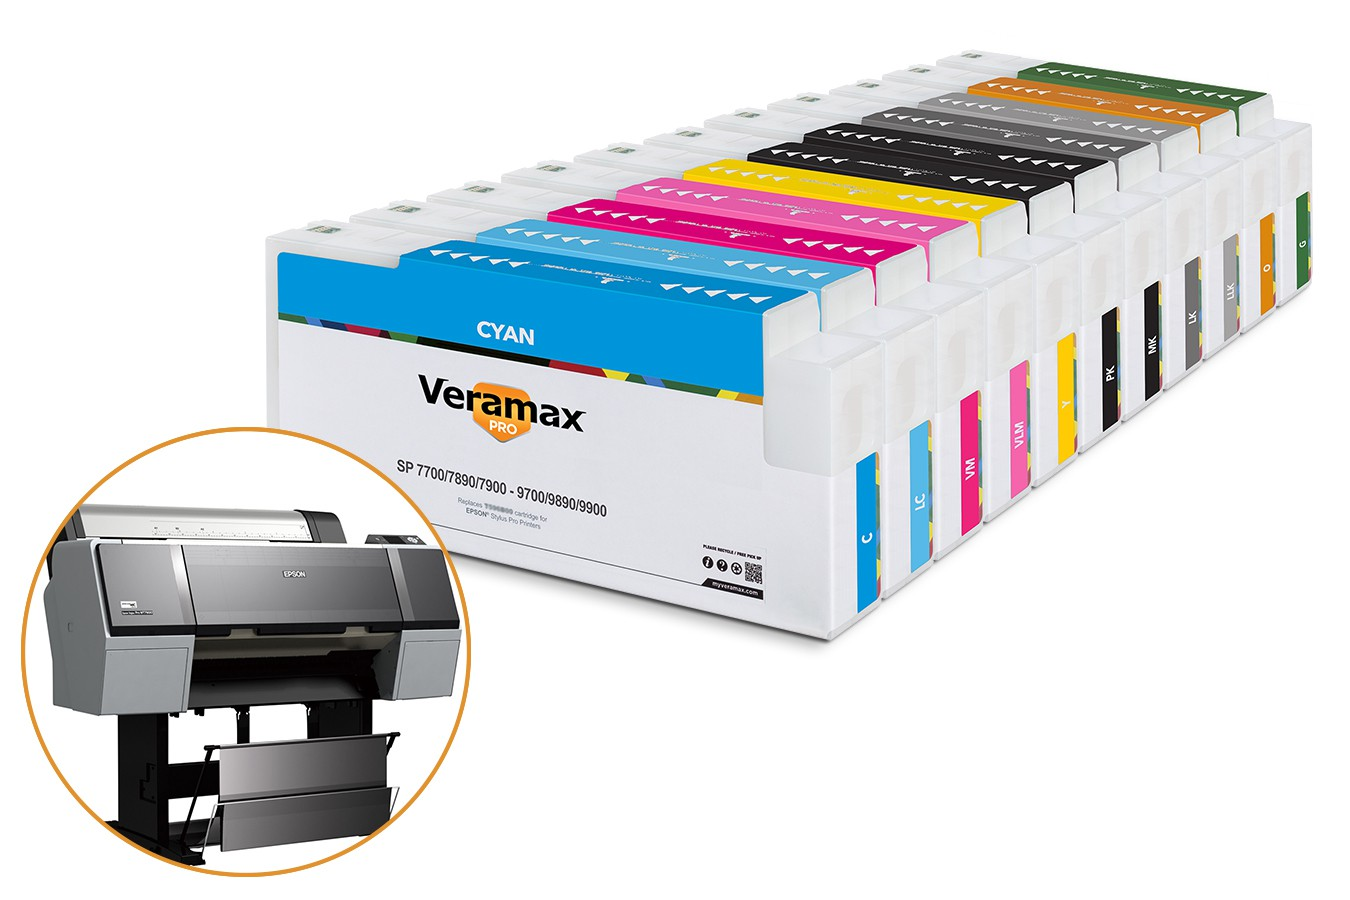 Veramax PRO Ink Cartridges for Stylus Pro 7900-9900 Printers